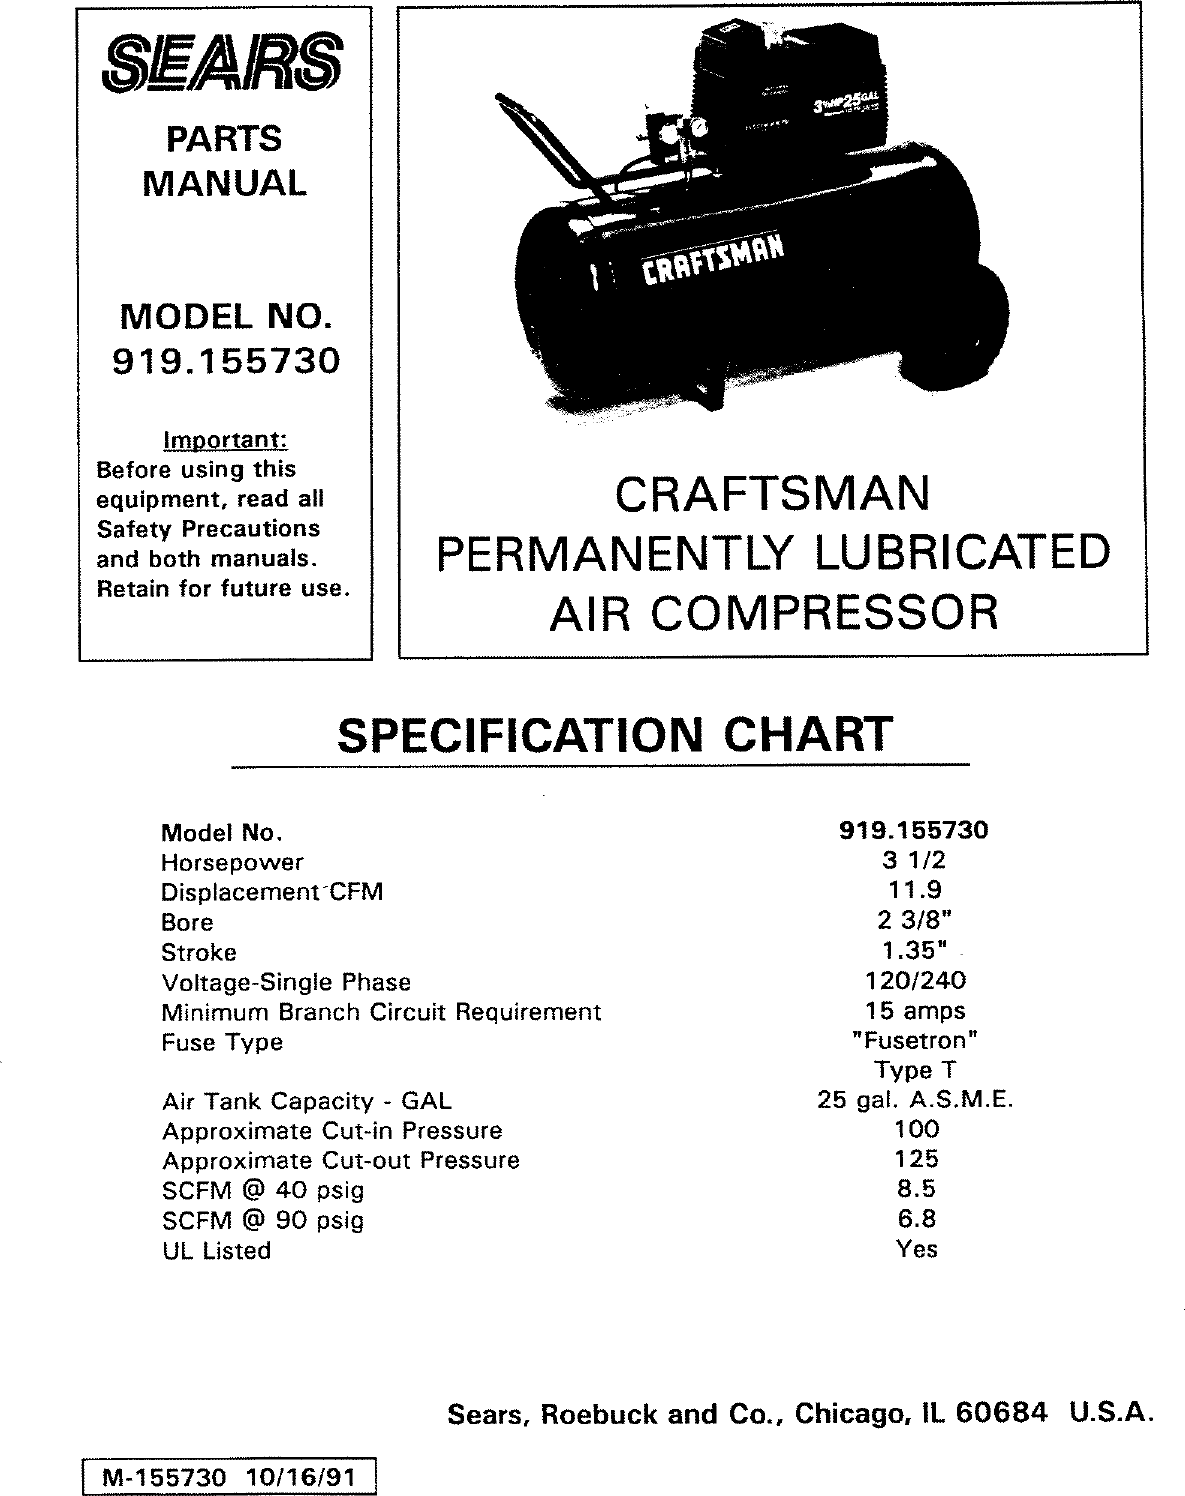 craftsman 919155730 user manual air compressor manuals and guides rh usermanual wiki Pcoket Guide Blip Scale User's Guide